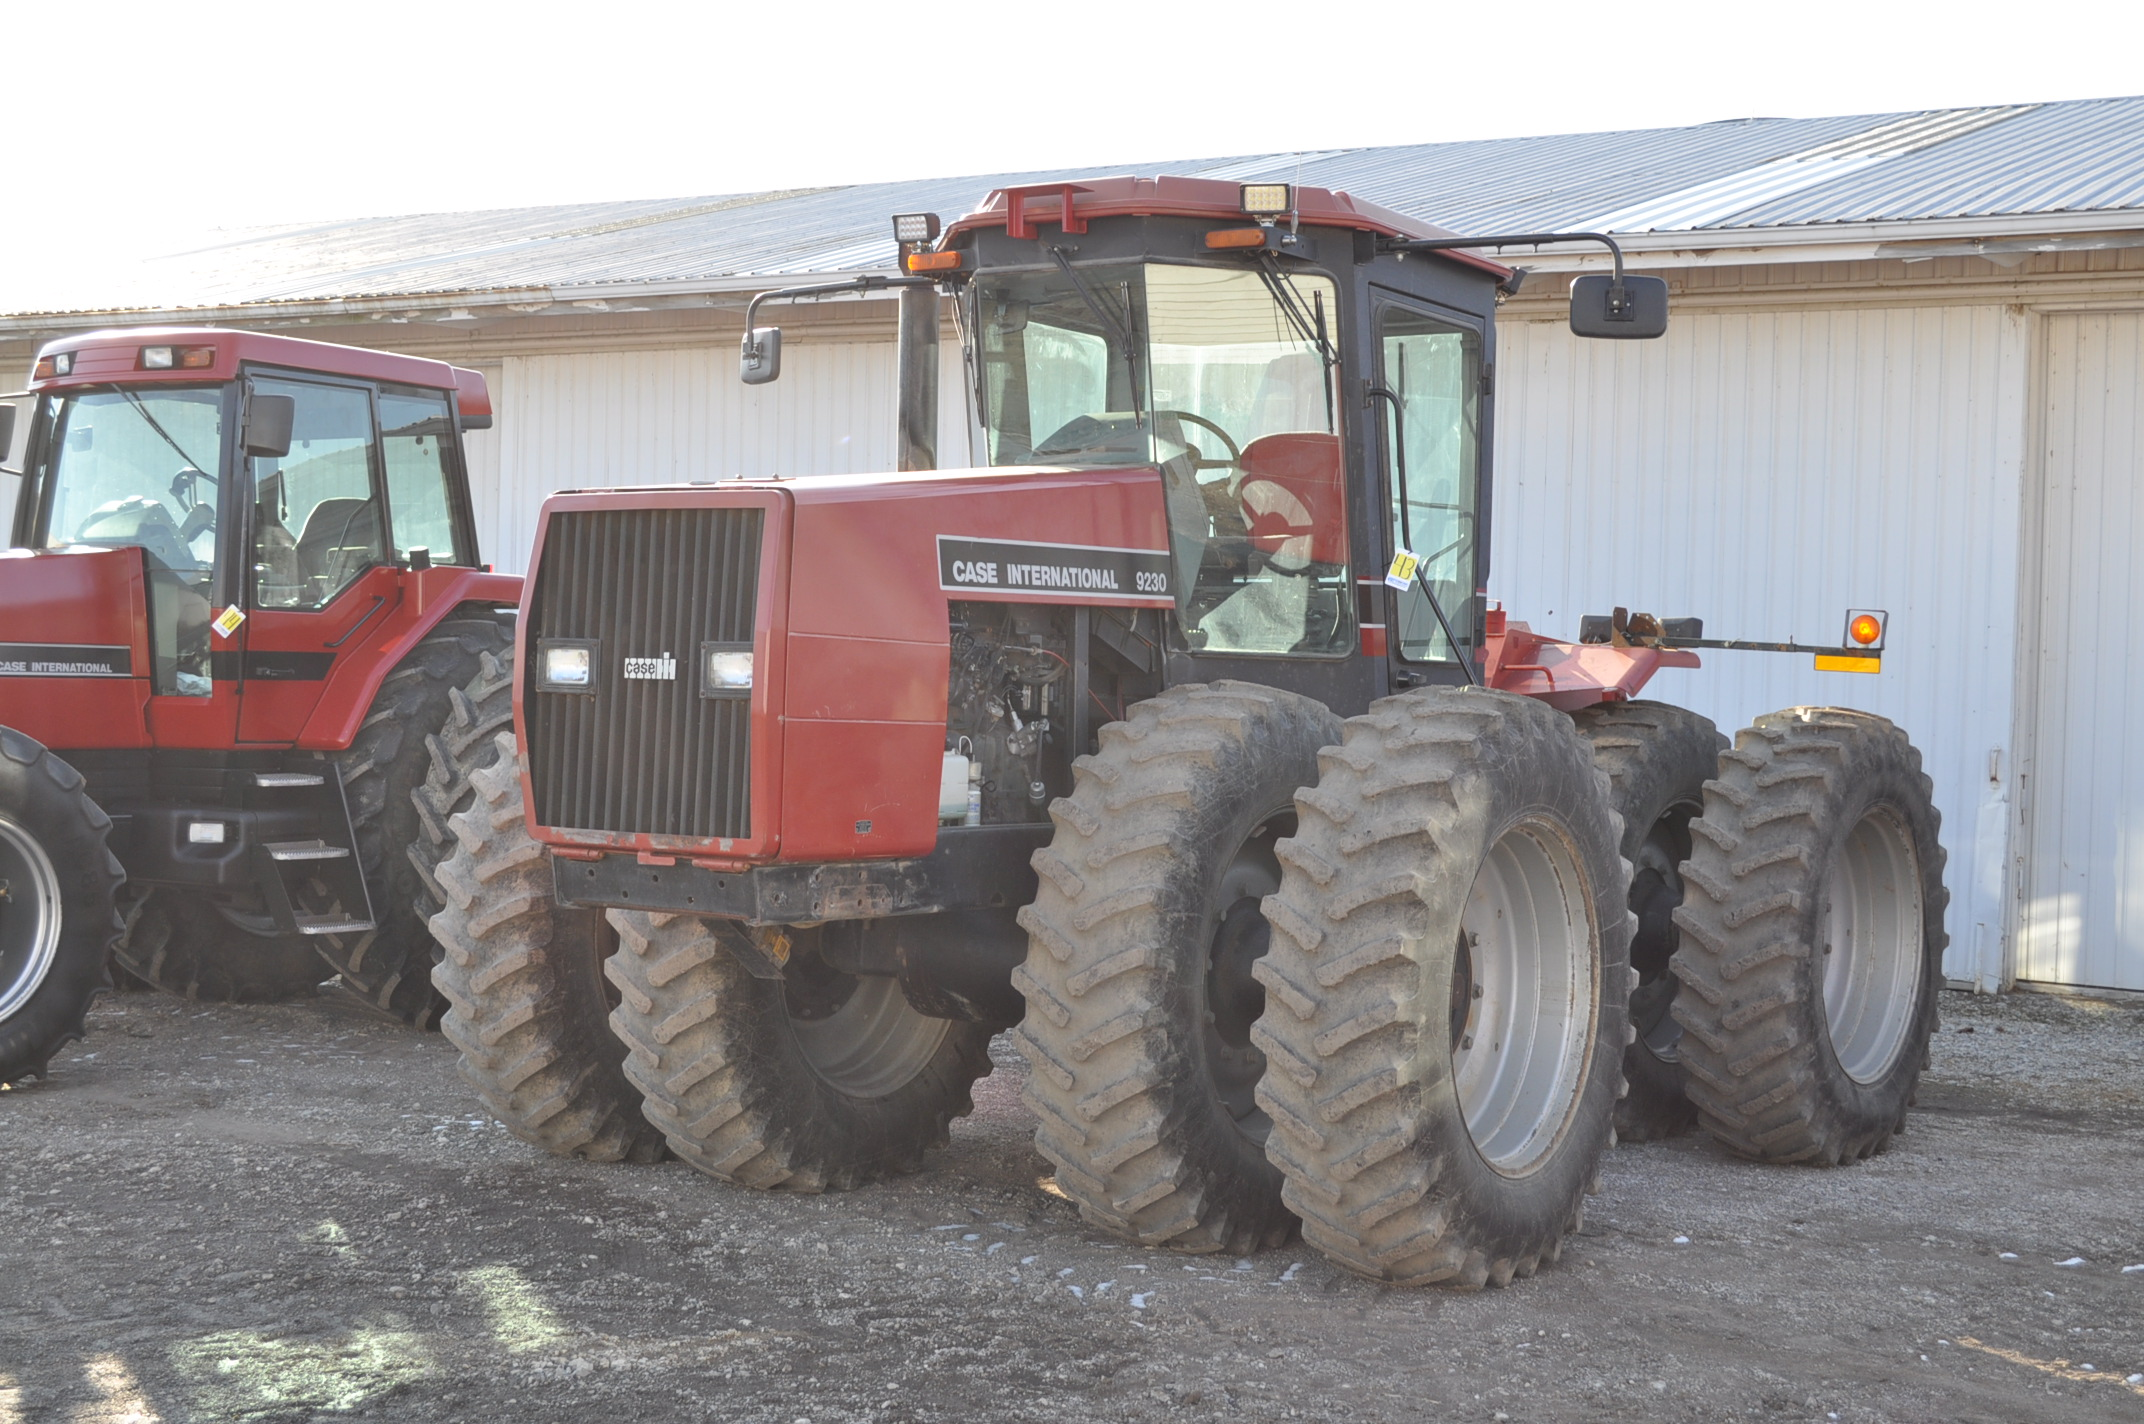 Case IH 9230 4WD tractor, 18.4-38 duals, power shift, skip shift, 4 hyd remotes, 3pt, quick hitch, - Image 2 of 23